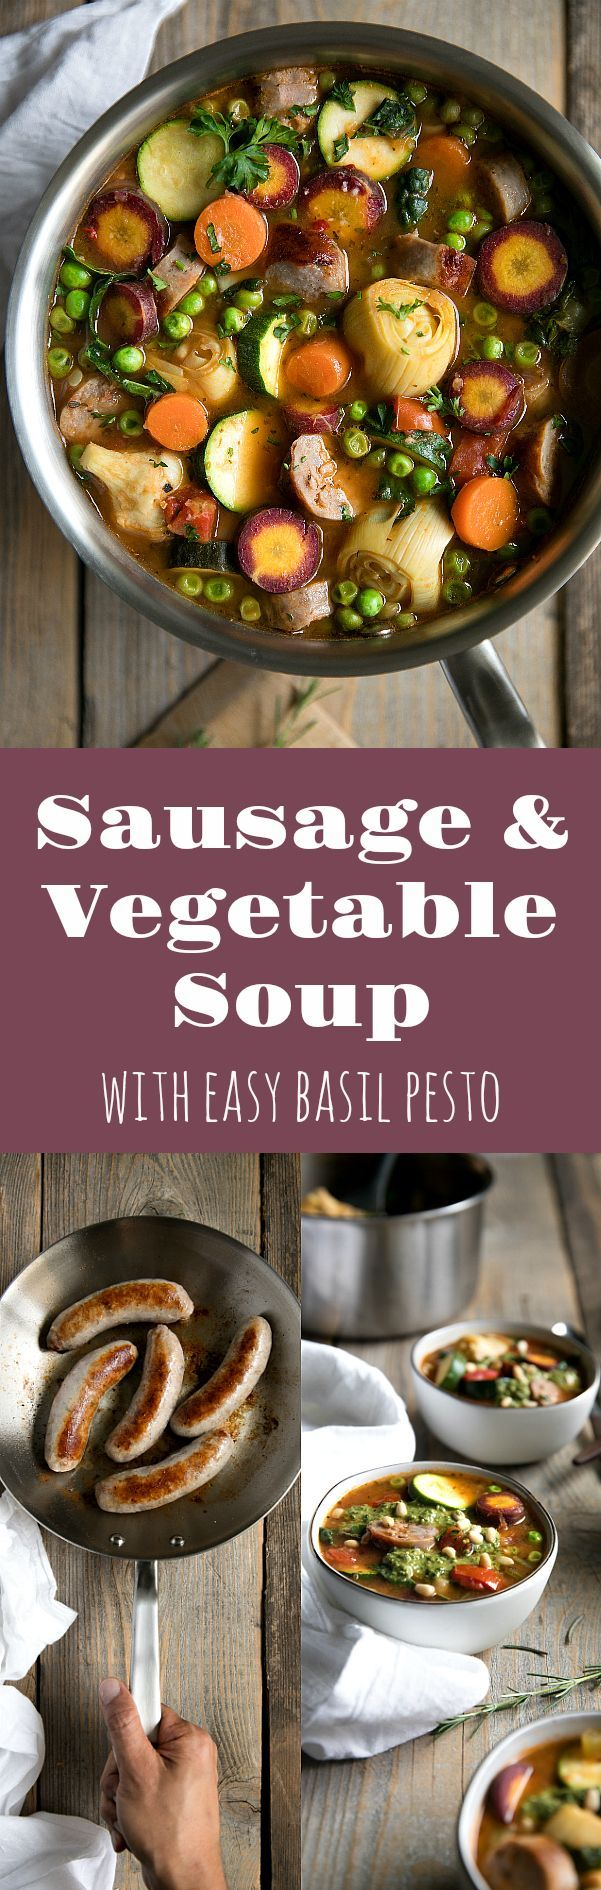 Sausage and Vegetable Soup with Easy Basil Pesto #madeinholidaysear #ad @madeincookware #soup #healthy #recipe #vegetablesoup #zucchini #sausage #easyrecipe #kale